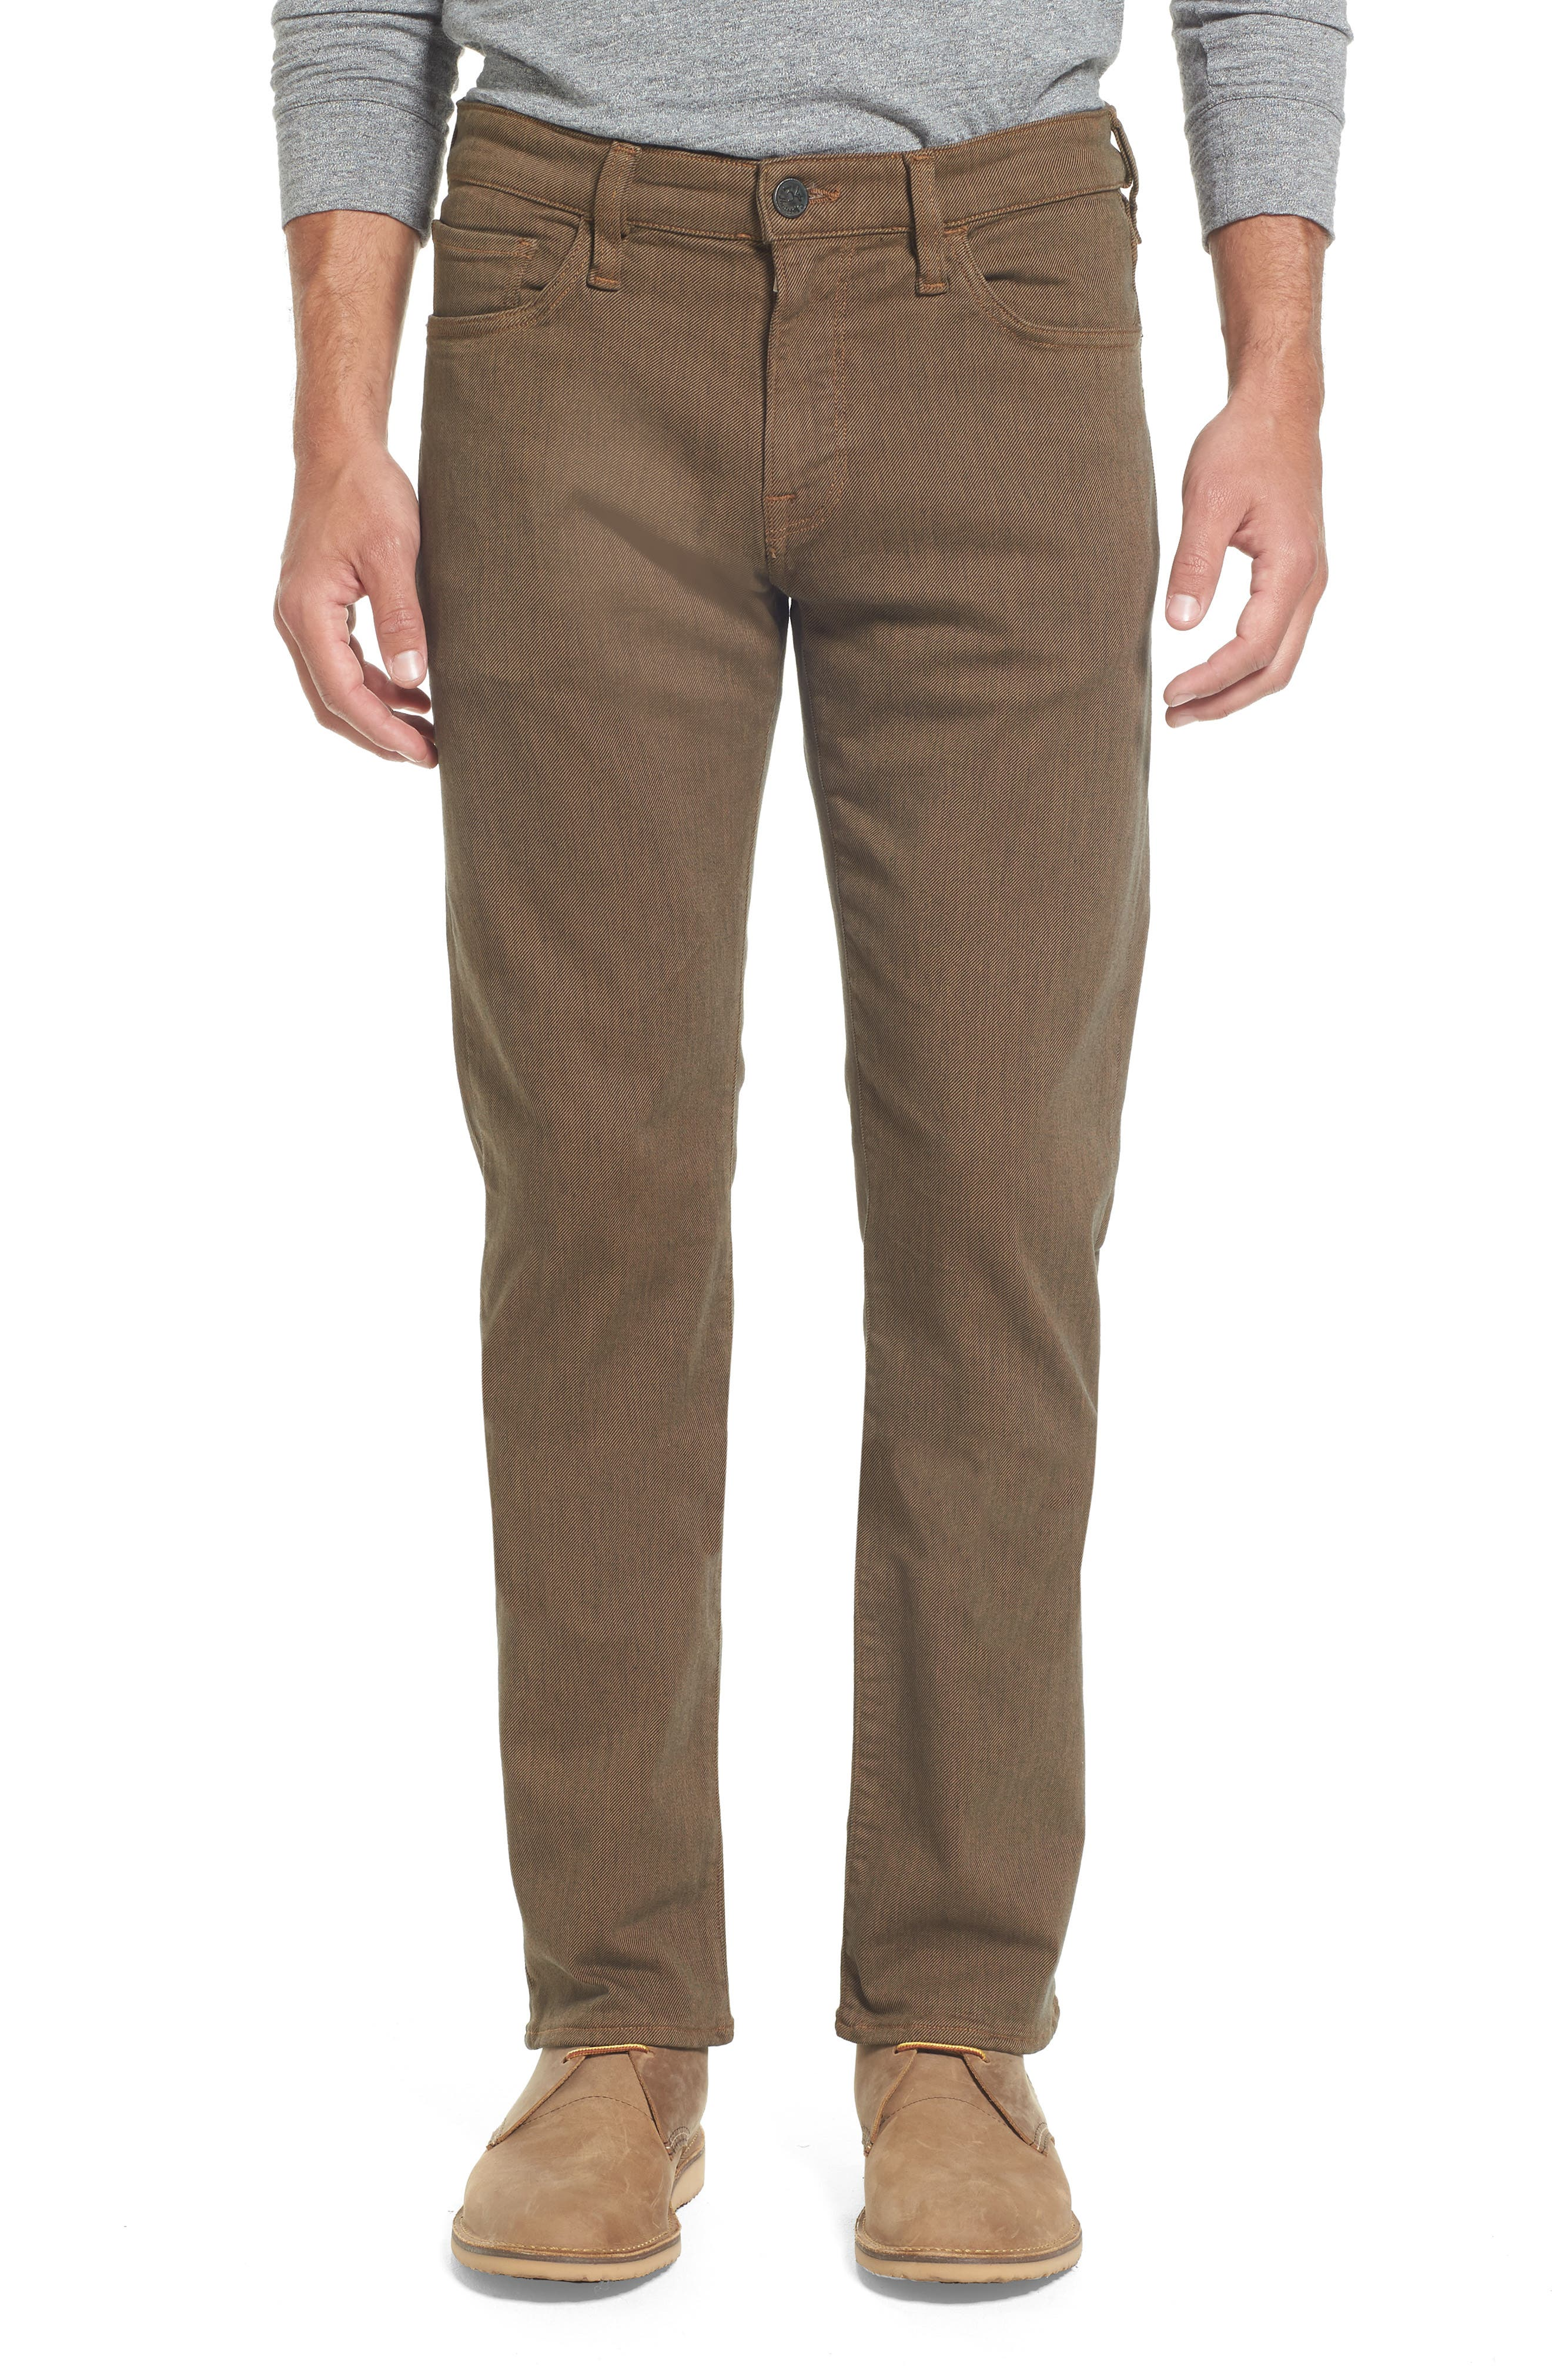 Heritage 34 Courage Straight Leg Jeans,                             Main thumbnail 1, color,                             200